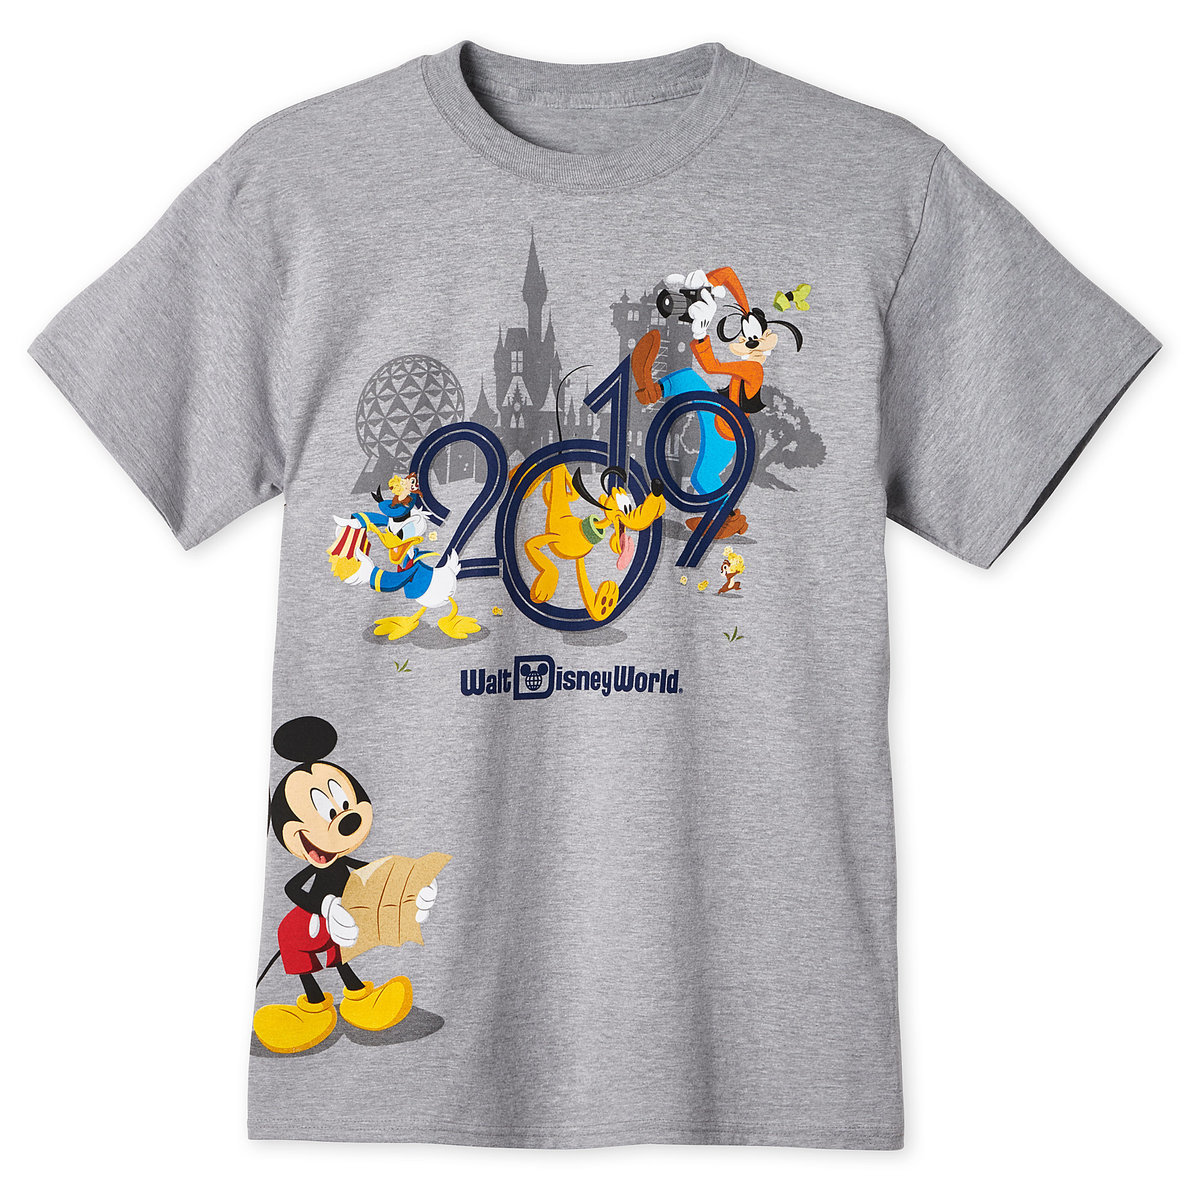 8eb86a58 Product Image of Mickey Mouse and Friends T-Shirt for Adults - Walt Disney  World